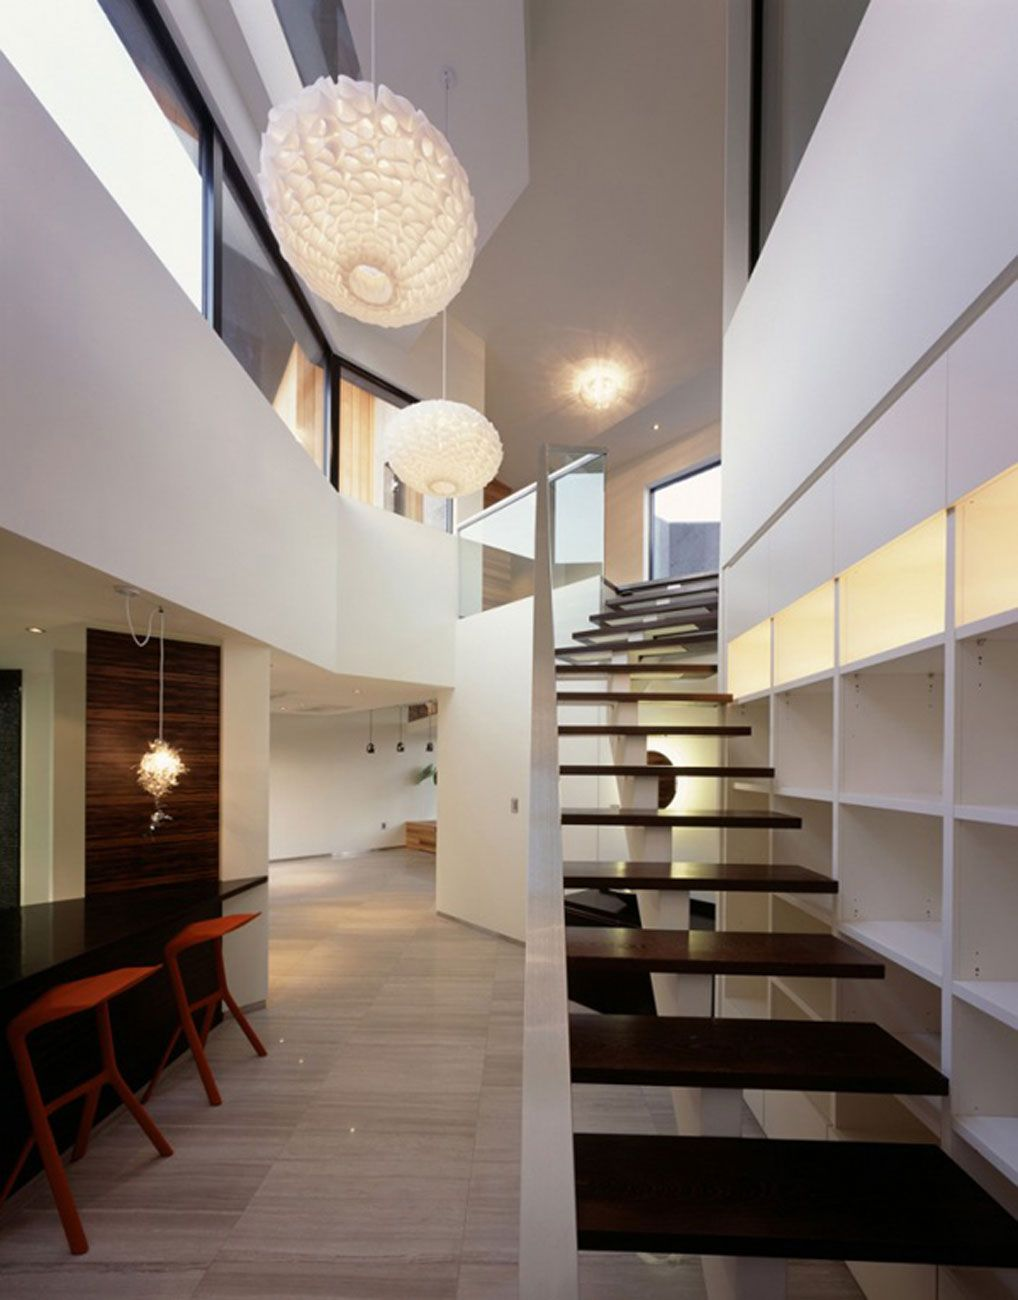 Z house stunning architecture of a modern house by korean architect staircase